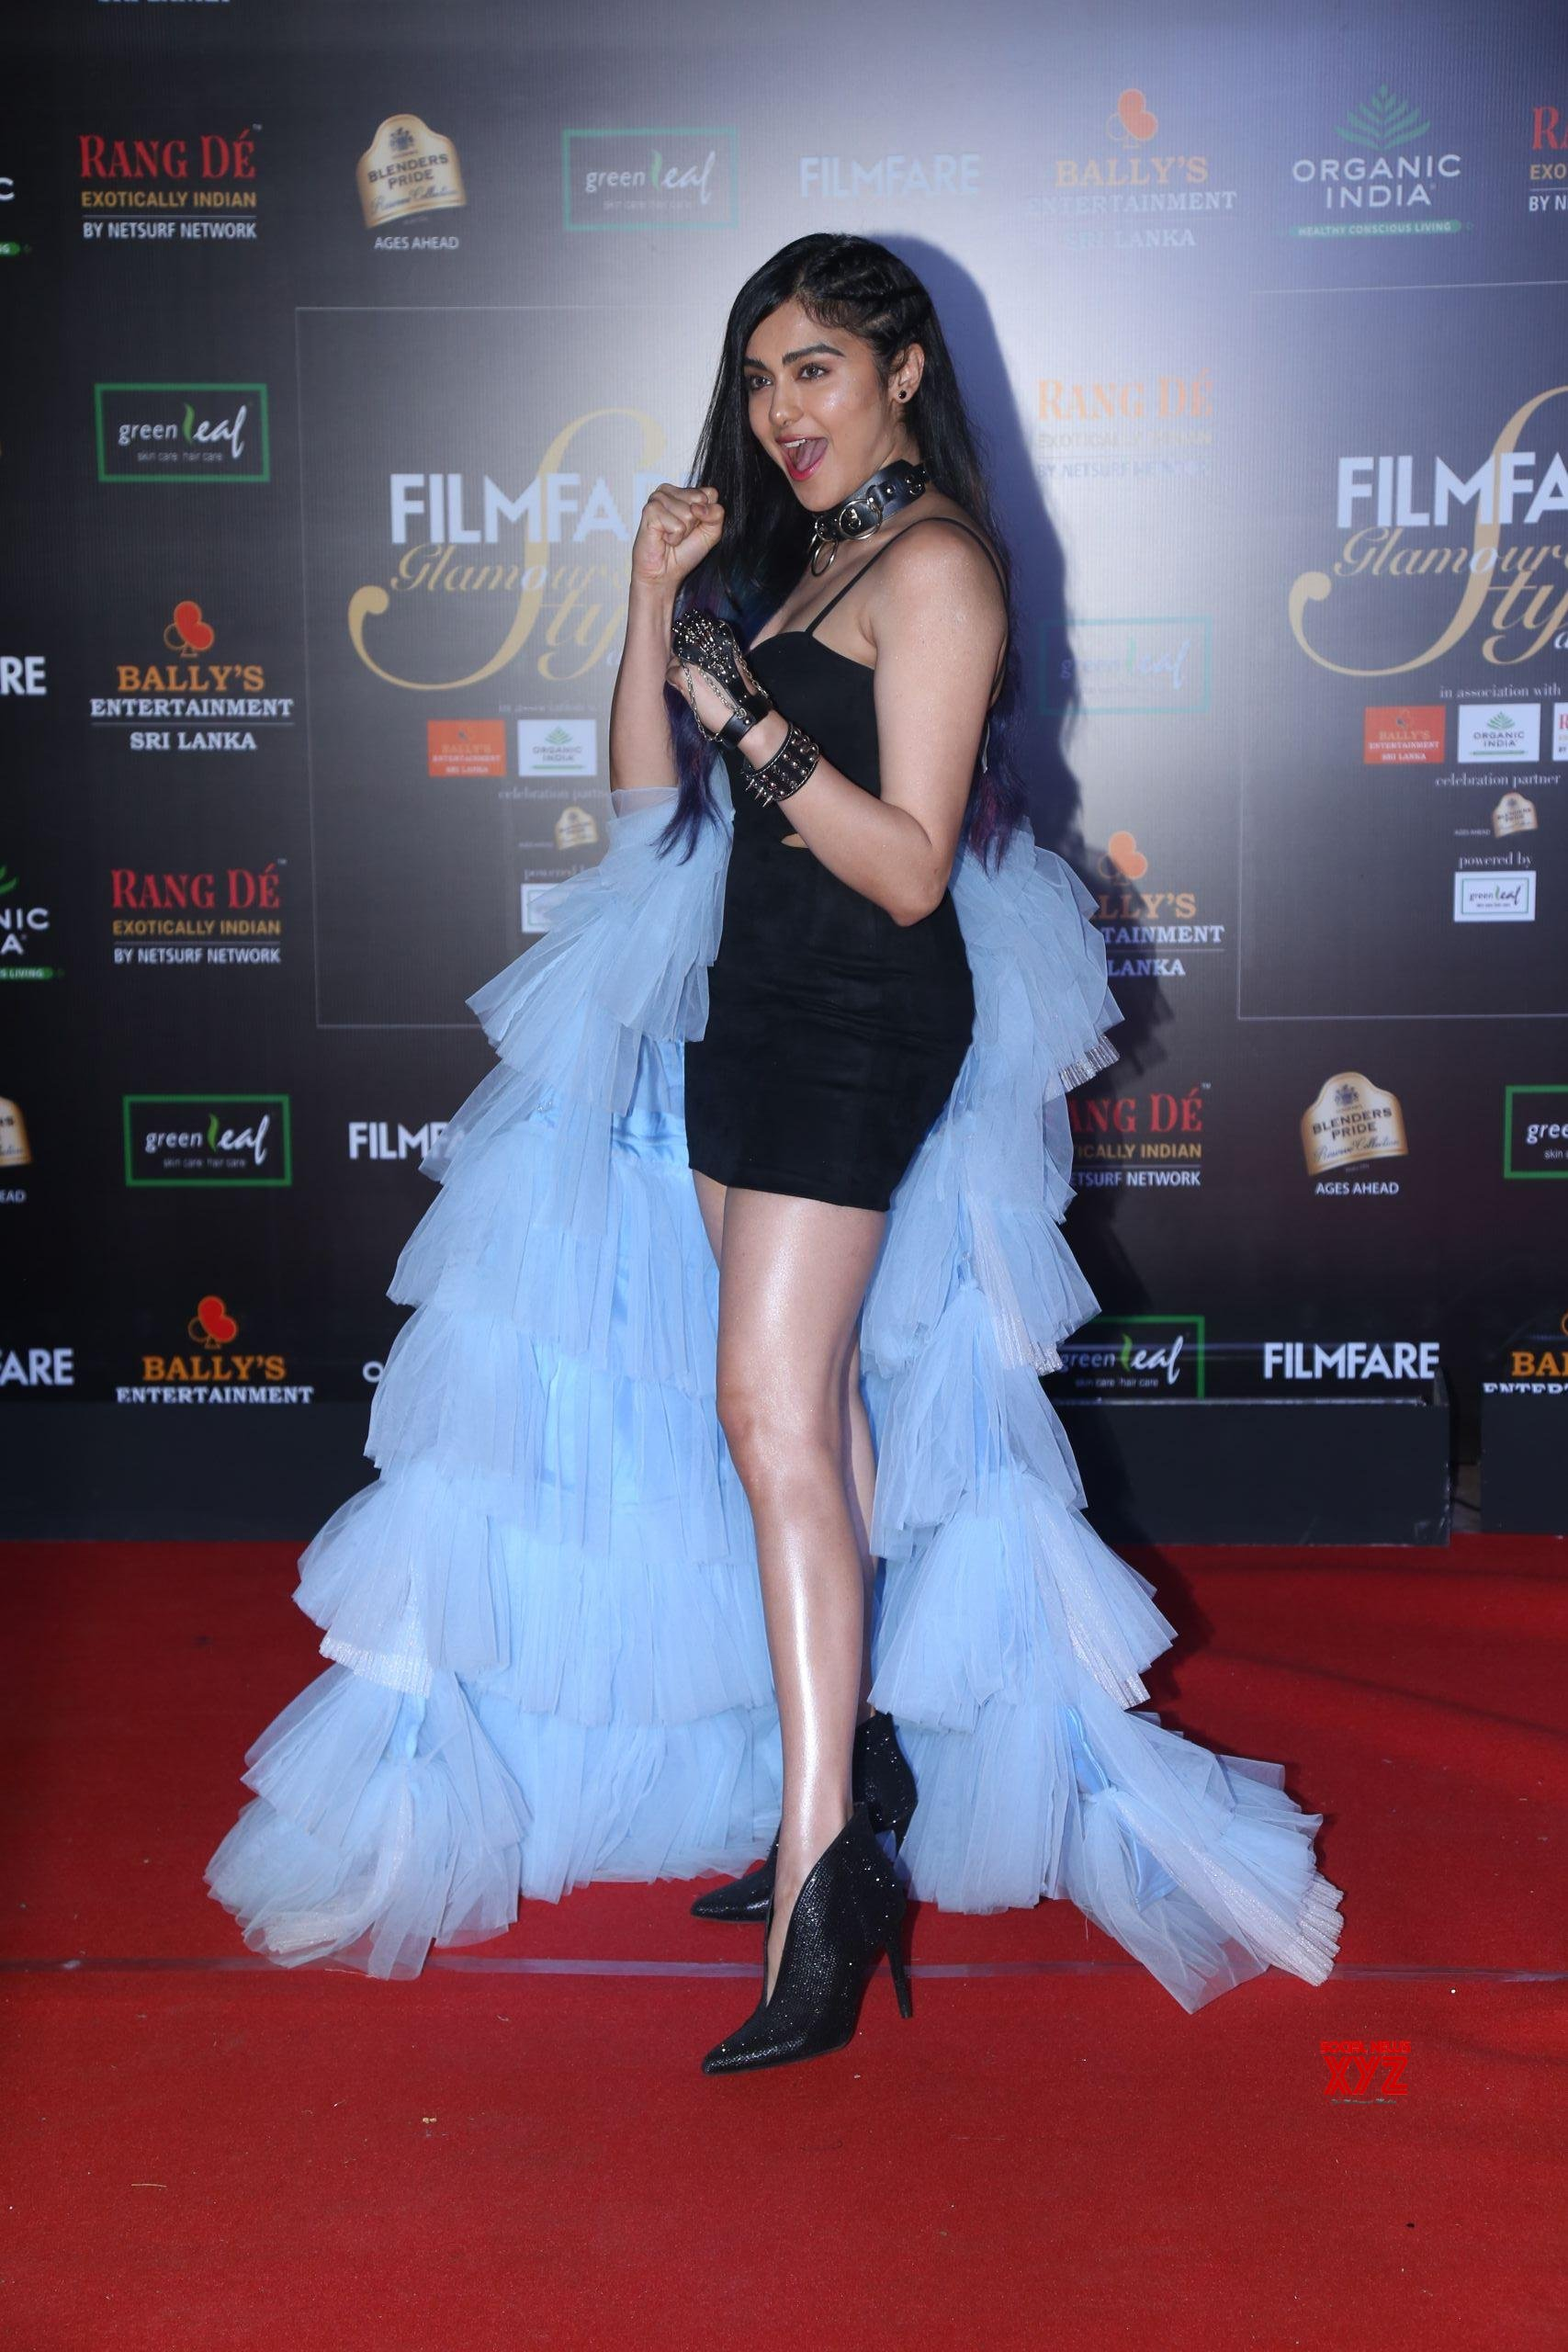 Actress Adah Sharma Hot HD Stills From Filmfare Glamour And Style Awards 2019 Red Carpet